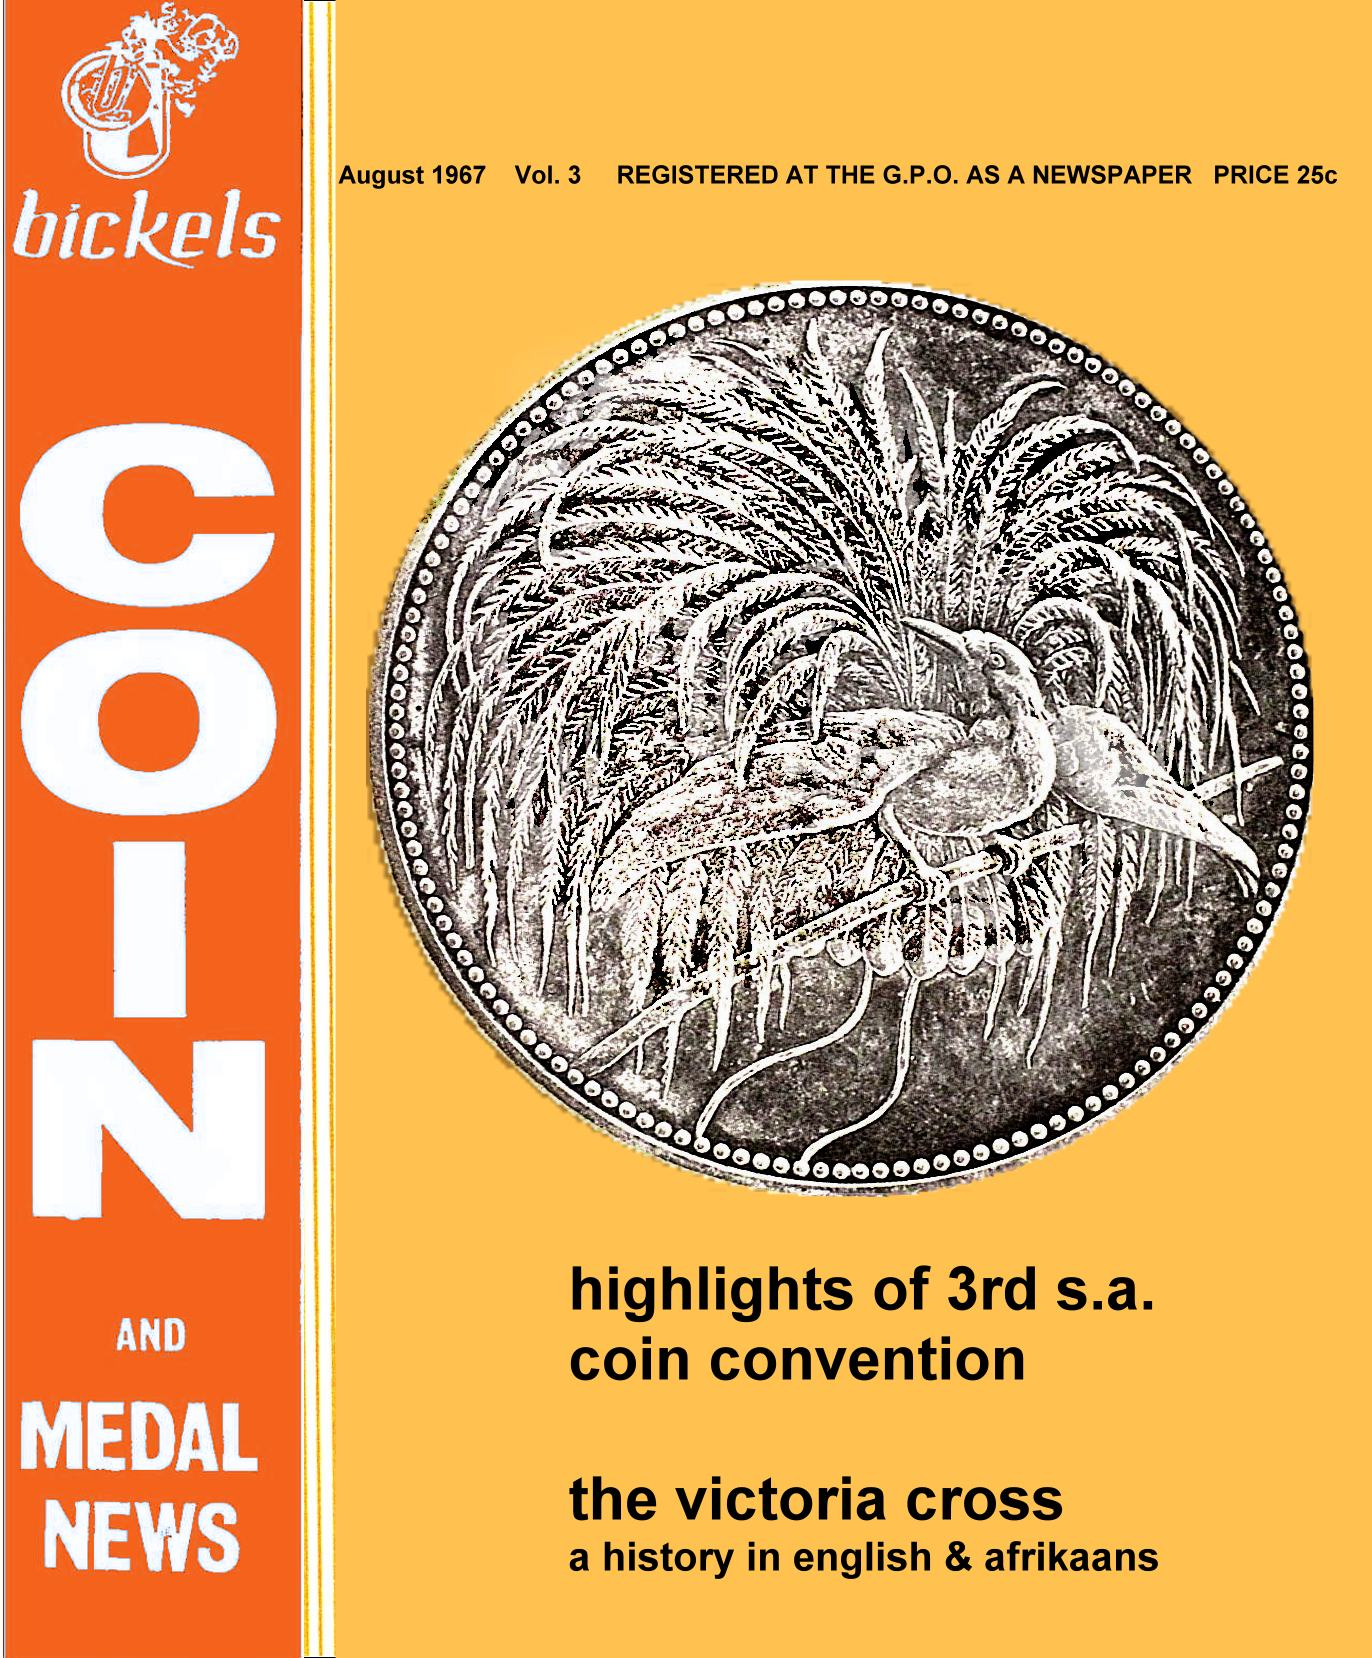 Bickels Coin & Medal News August 1967 Vol 3 No 2